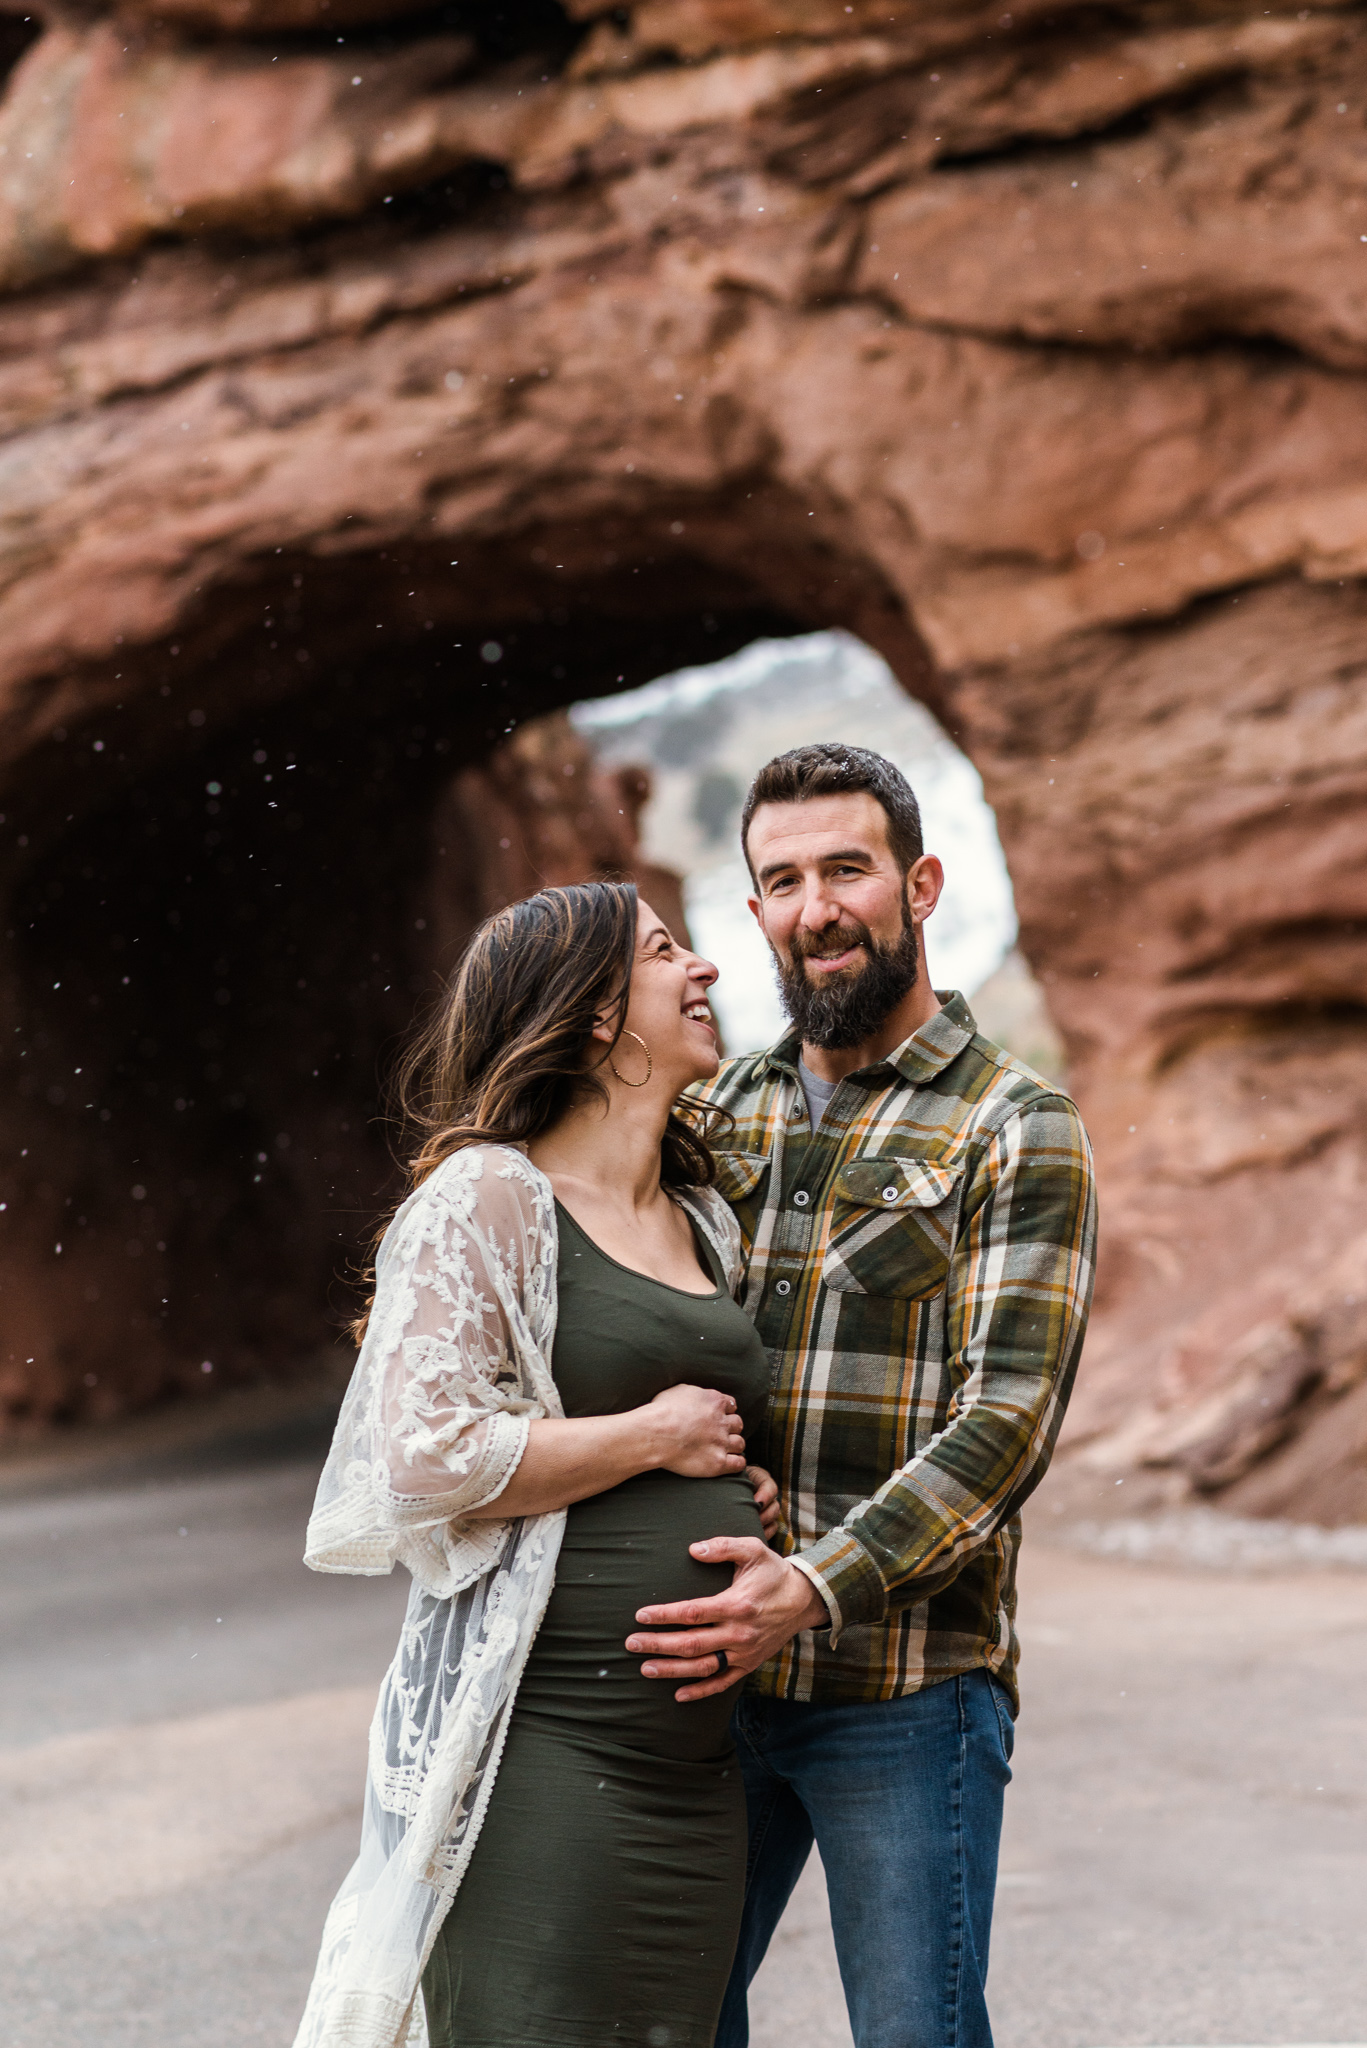 """Gabrielle took beautiful maternity pictures for us at Red Rocks! Before we got there she had scoped out the perfect location for the pictures. Even though it was freezing, she toughed it out for us and we got so many great shots. I would definitely recommend Gabrielle, she was easy to communicate with and great to work with!"""